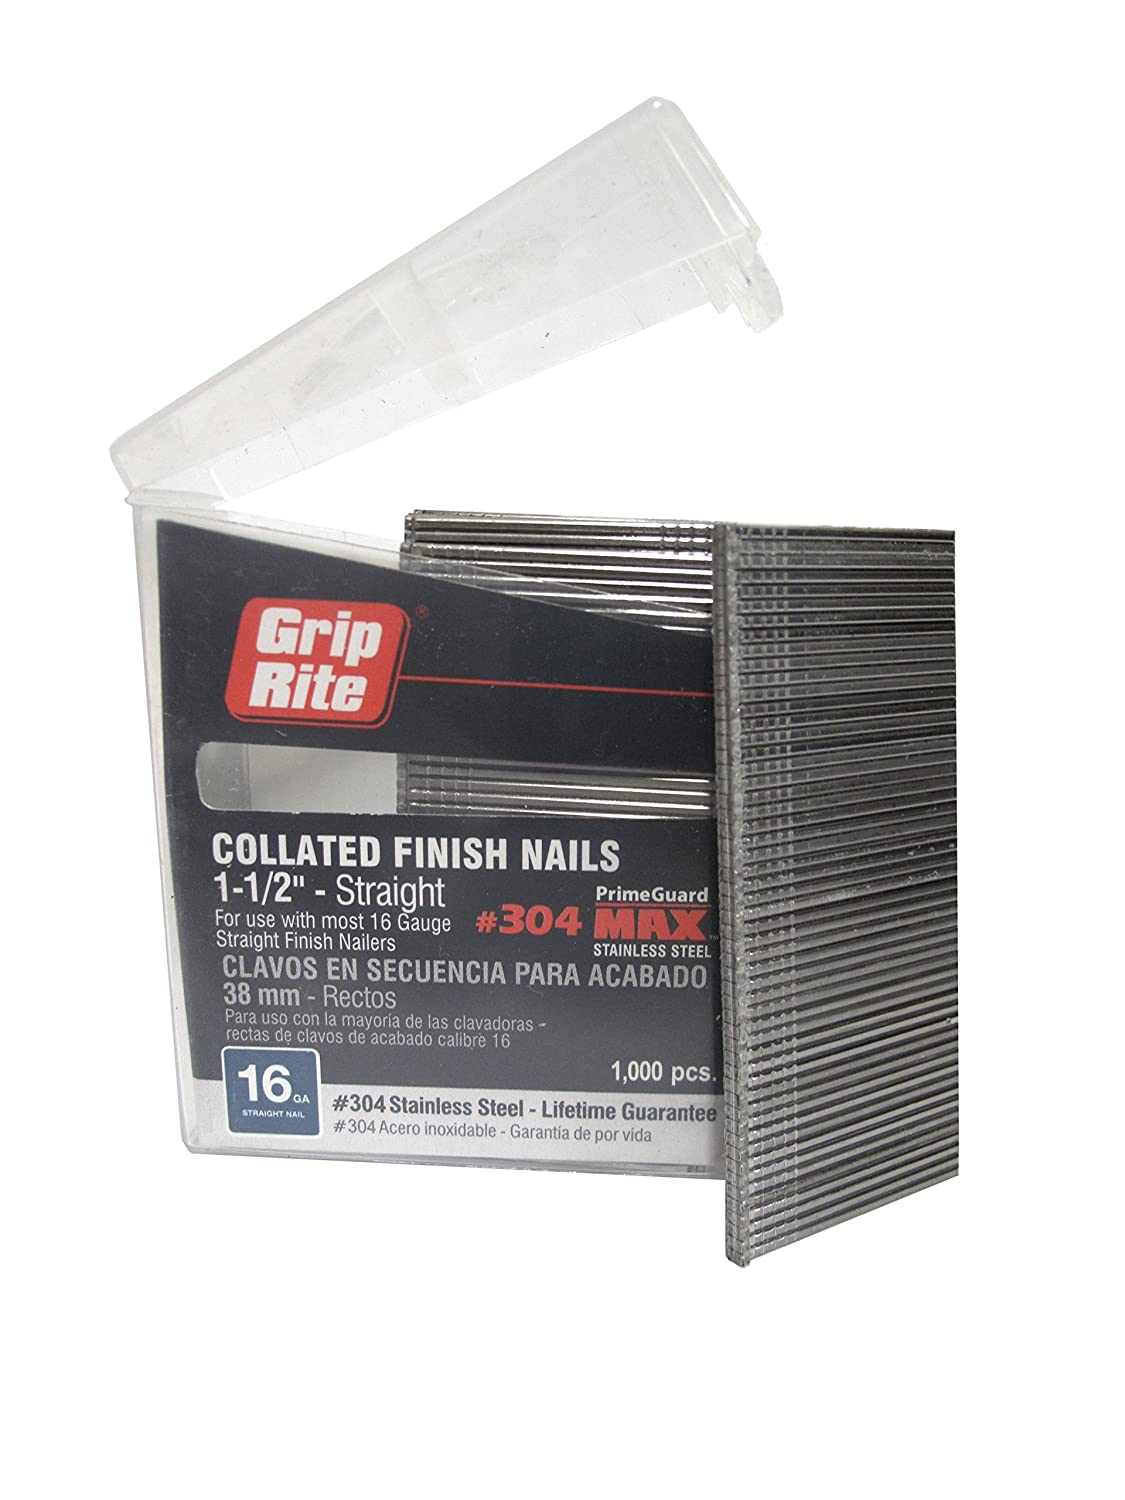 Grip Rite Prime Guard MAXB64872 16 Gauge 304 Stainless Steel Straight Finish Nails in Belt Clip Box Pack of 1000 1 1 2